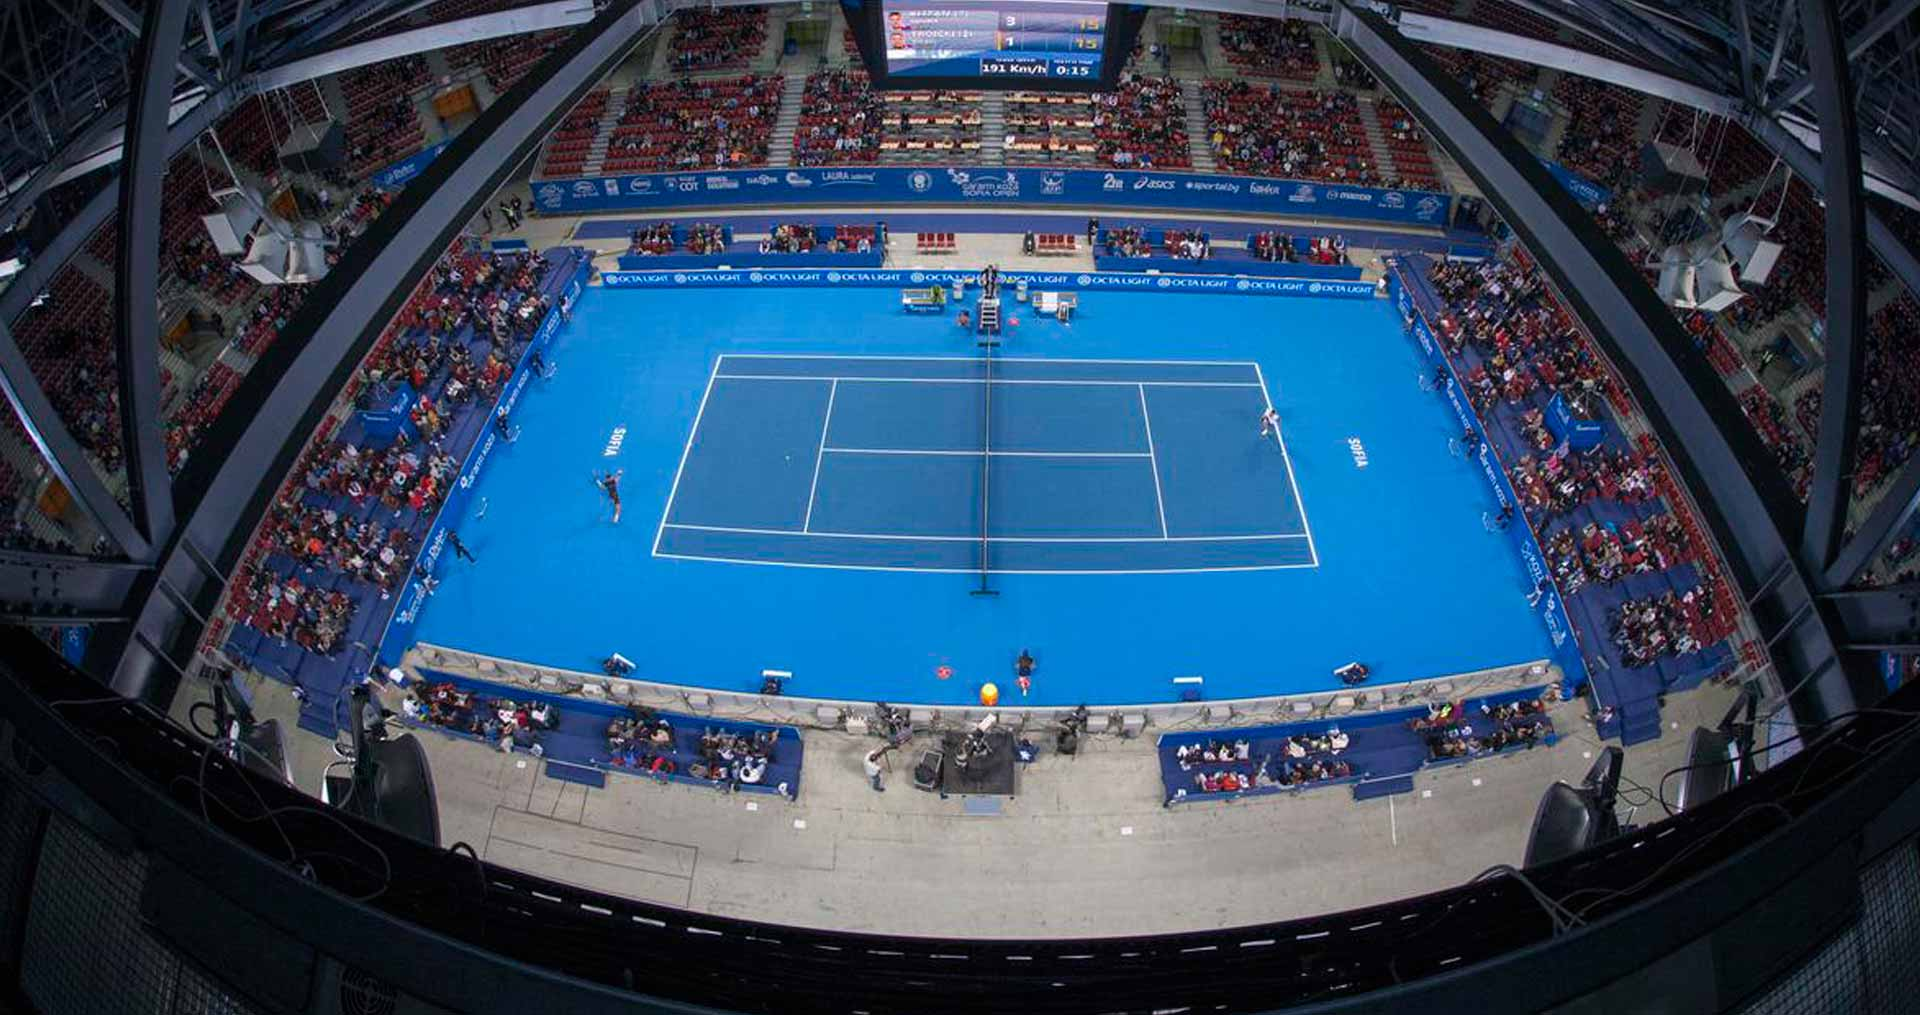 Sofia Open Prize Money 2021 Confirmed - peRFect Tennis